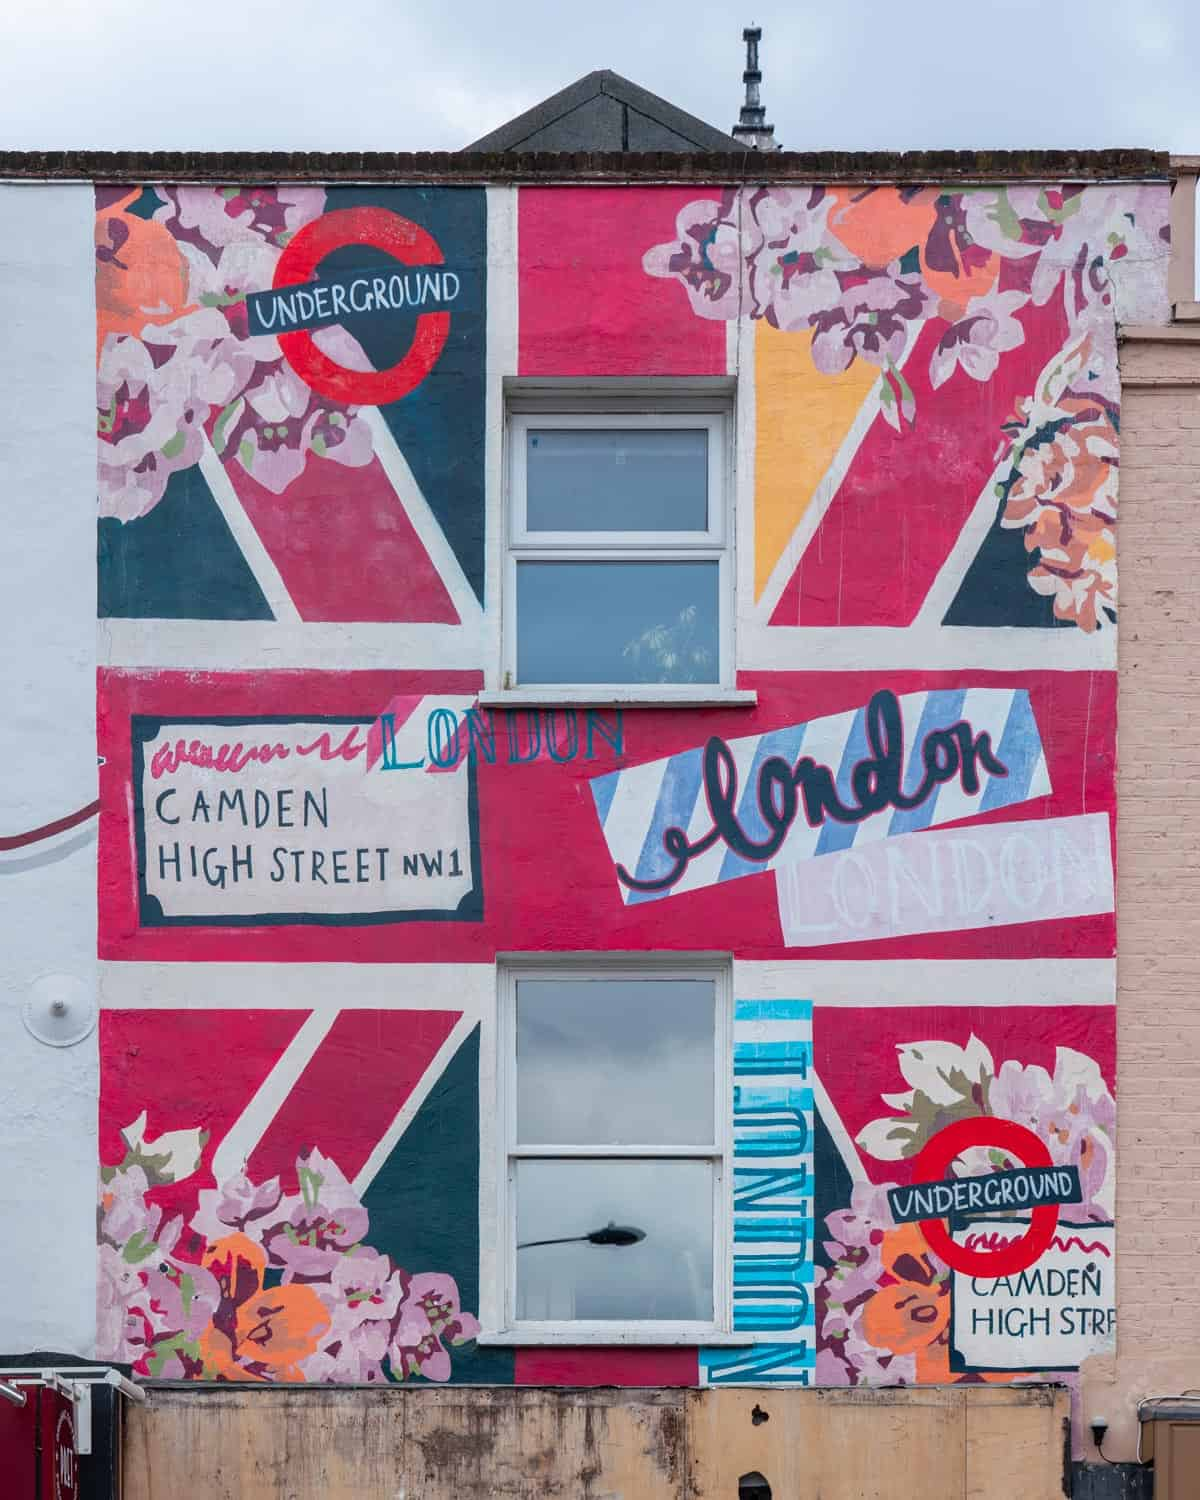 Bright painted artwork of a Union Jack and flowers on a shop front on Camden Hight Street